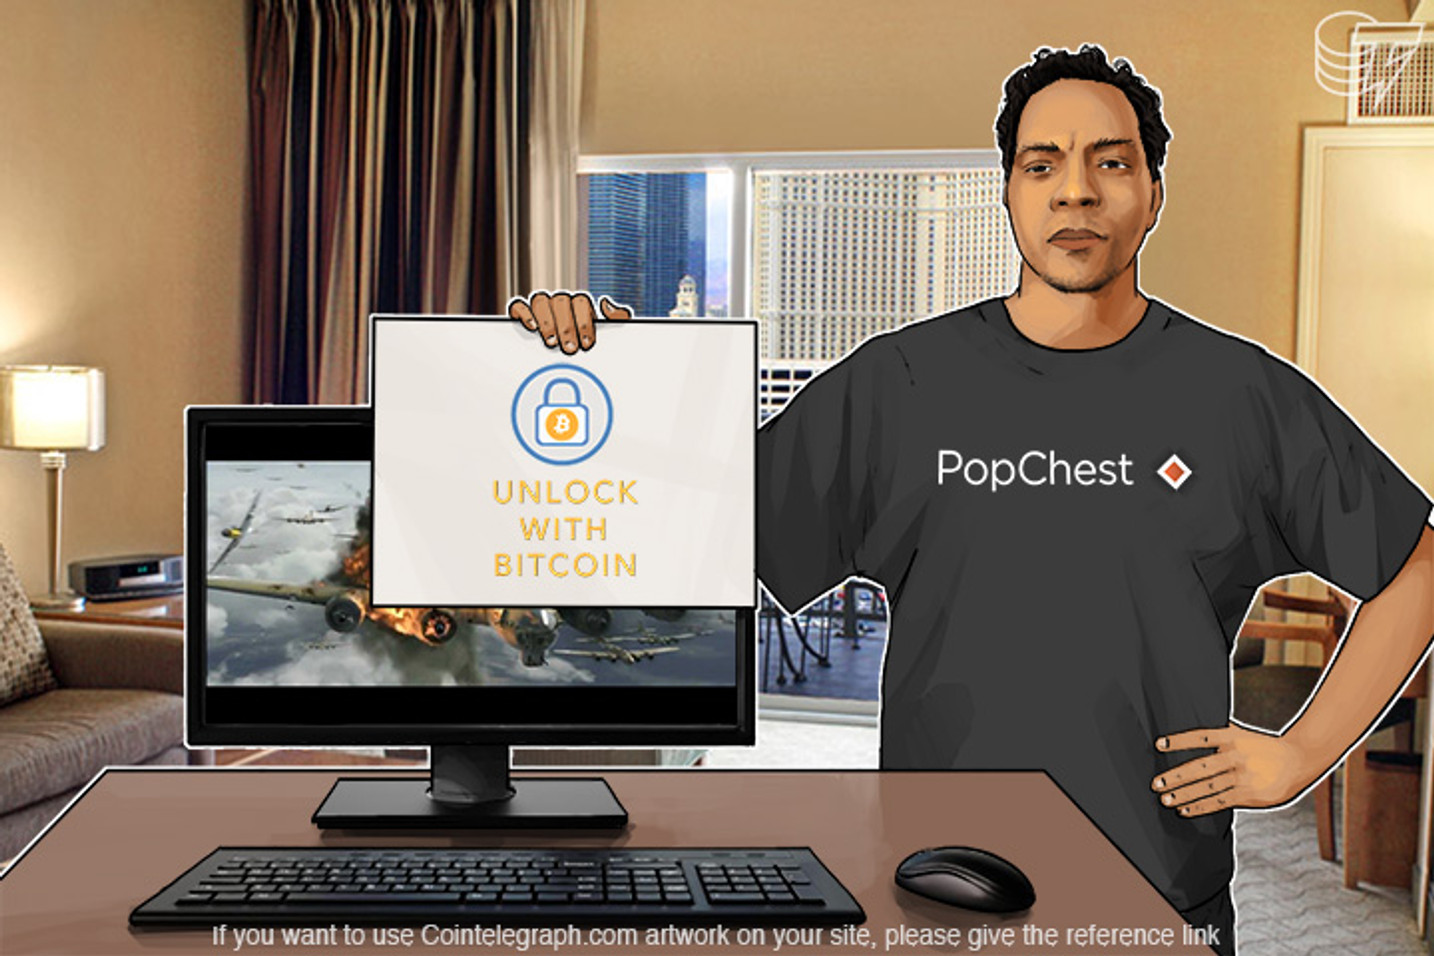 PopChest Acquires First Major YouTuber